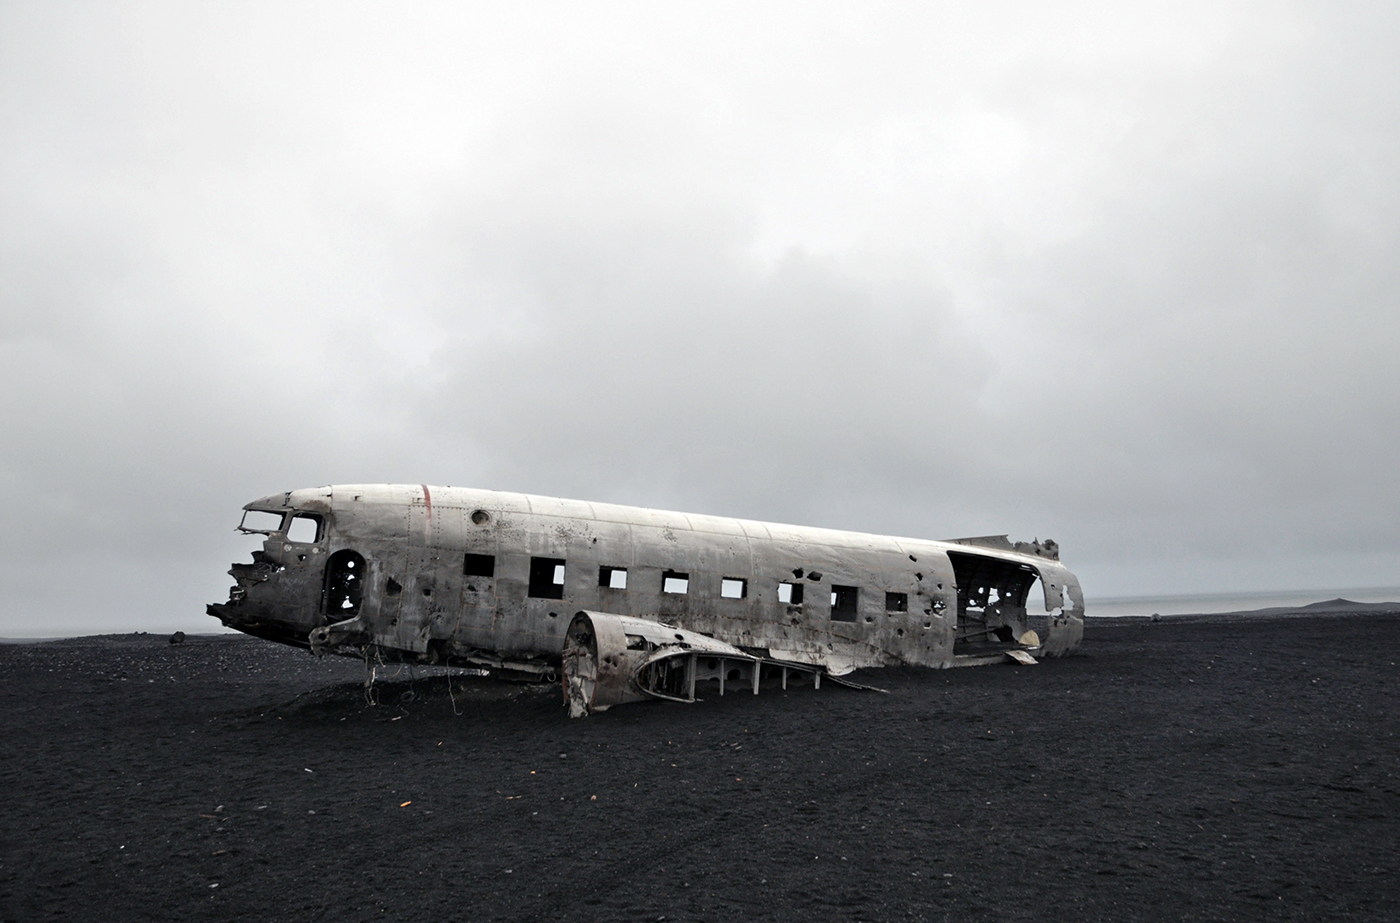 DC-3 Plane wreck in Iceland South Coast